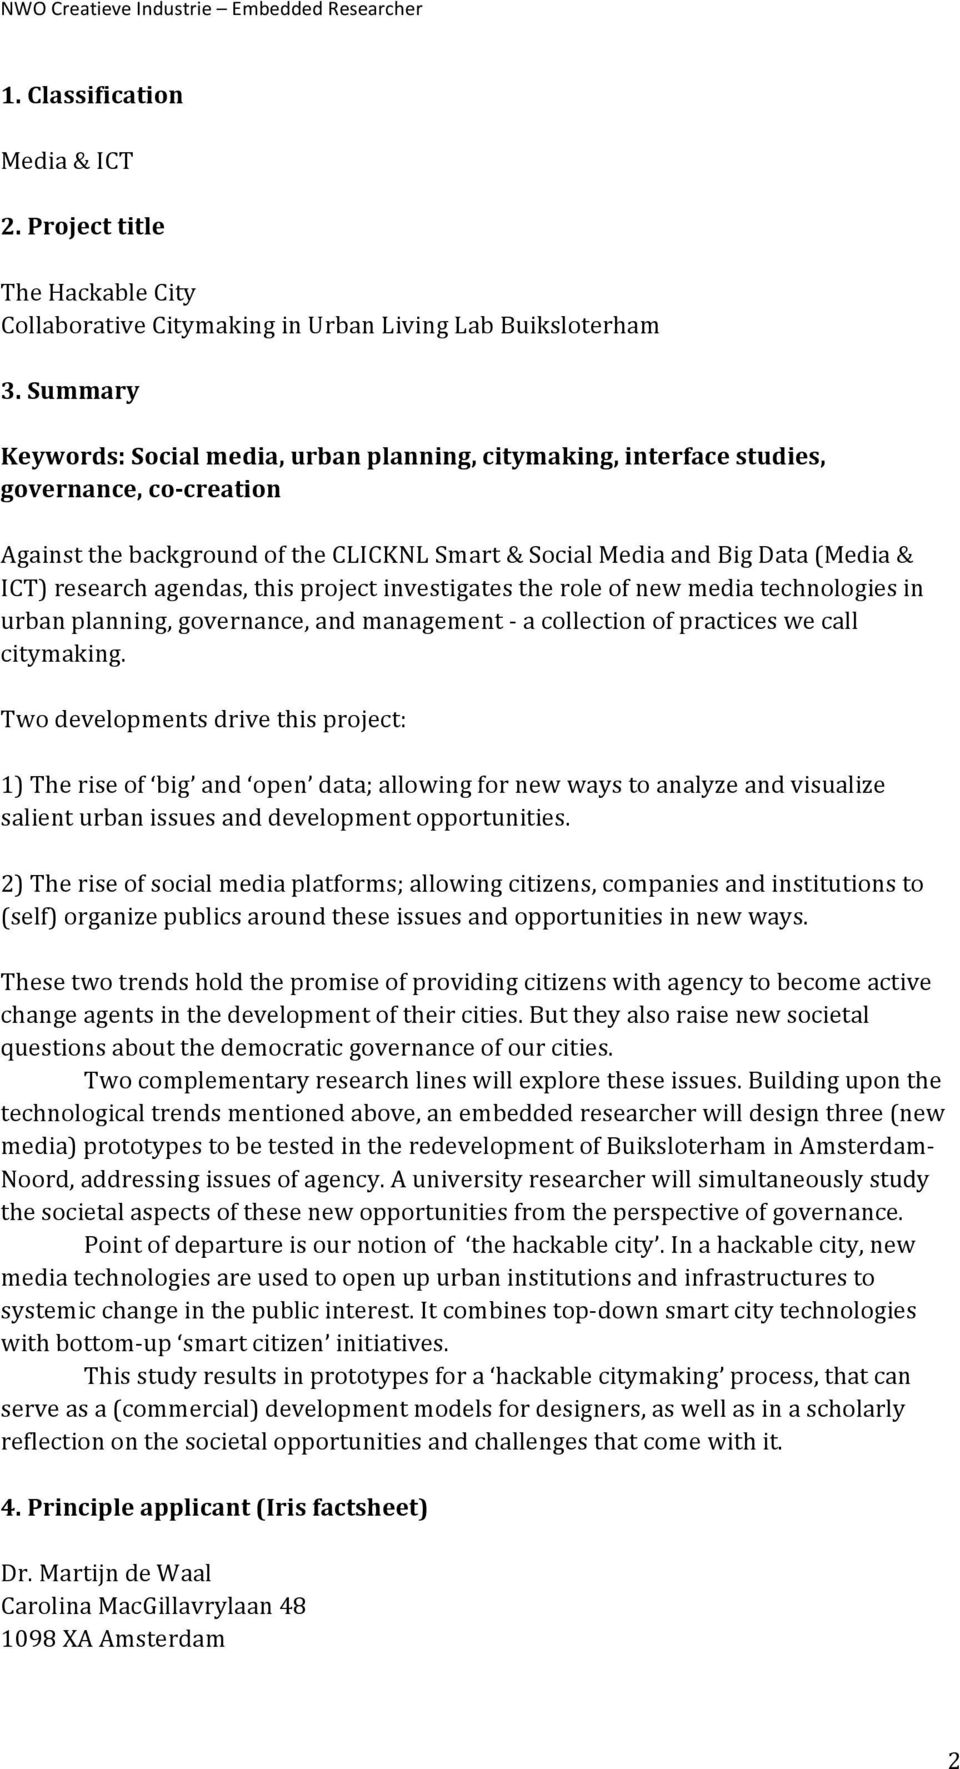 agendas, this project investigates the role of new media technologies in urban planning, governance, and management - a collection of practices we call citymaking.